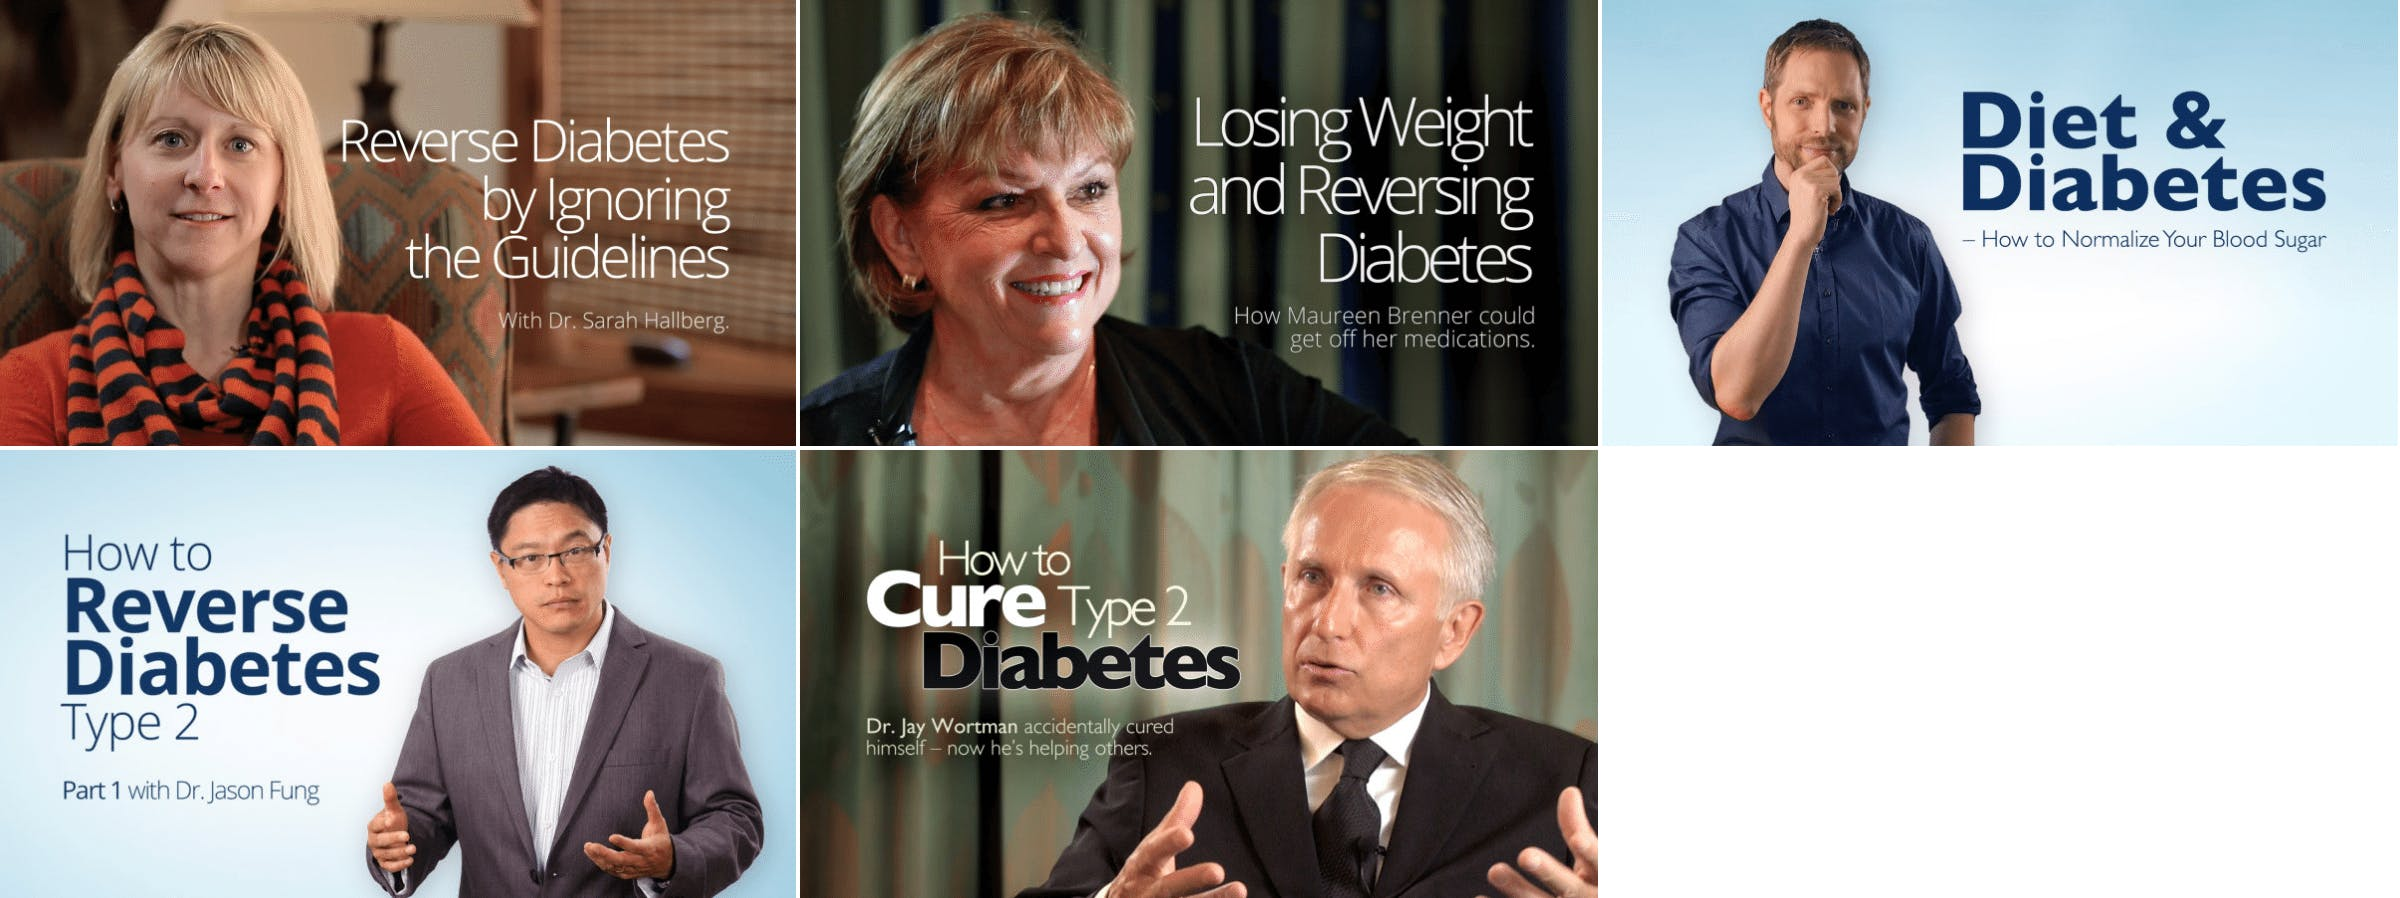 The Top 5 Videos About Diabetes and Low Carb